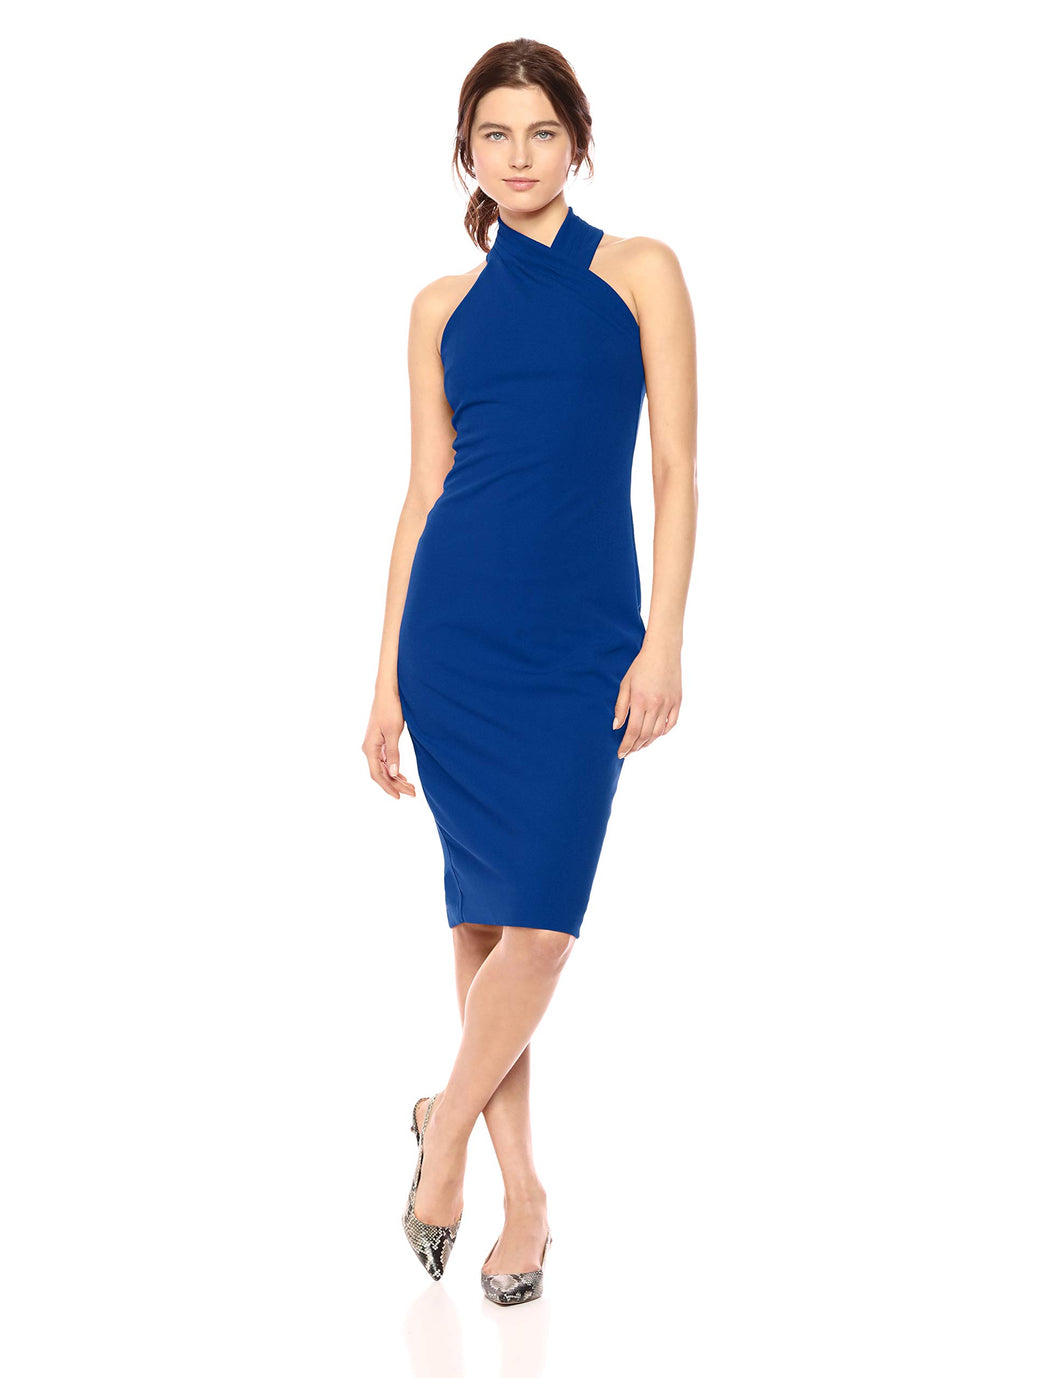 RACHEL Rachel Roy Women's Harland Dress, Silk Blue, M - Vancelette Global Art Acquisitions